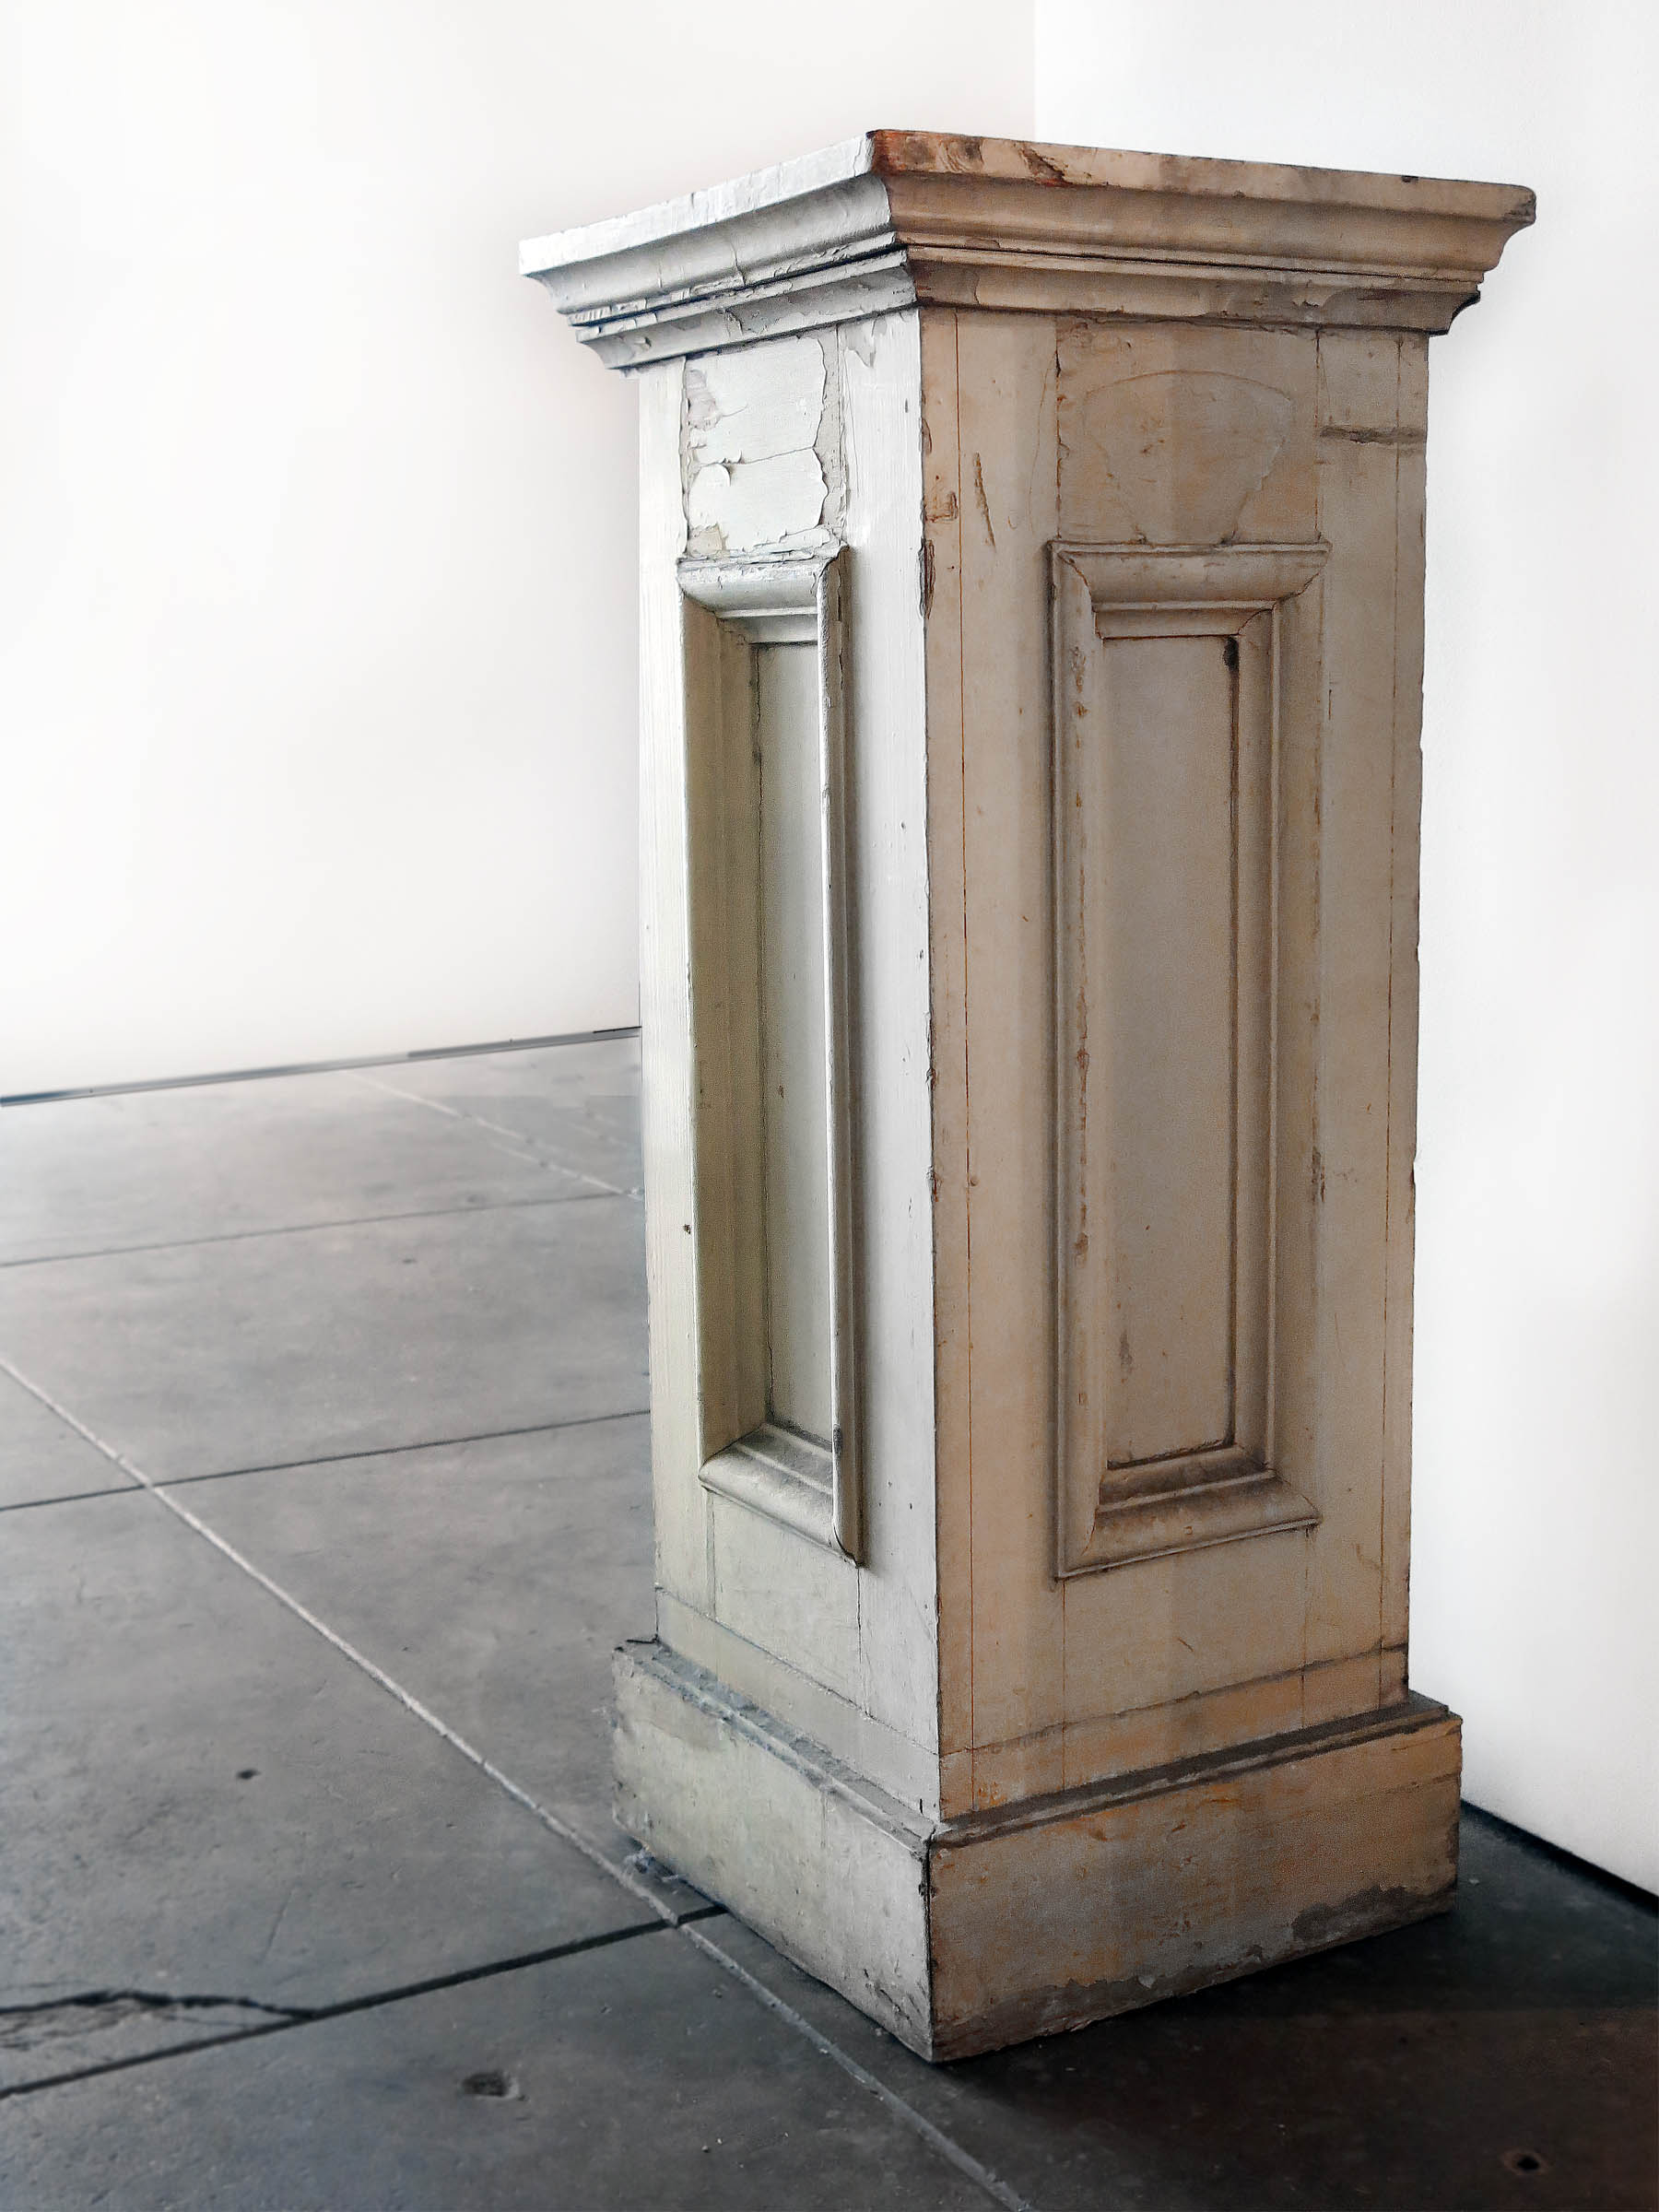 American, Pedestal, Early 20th c., Painted wood, 35h x 15w in.